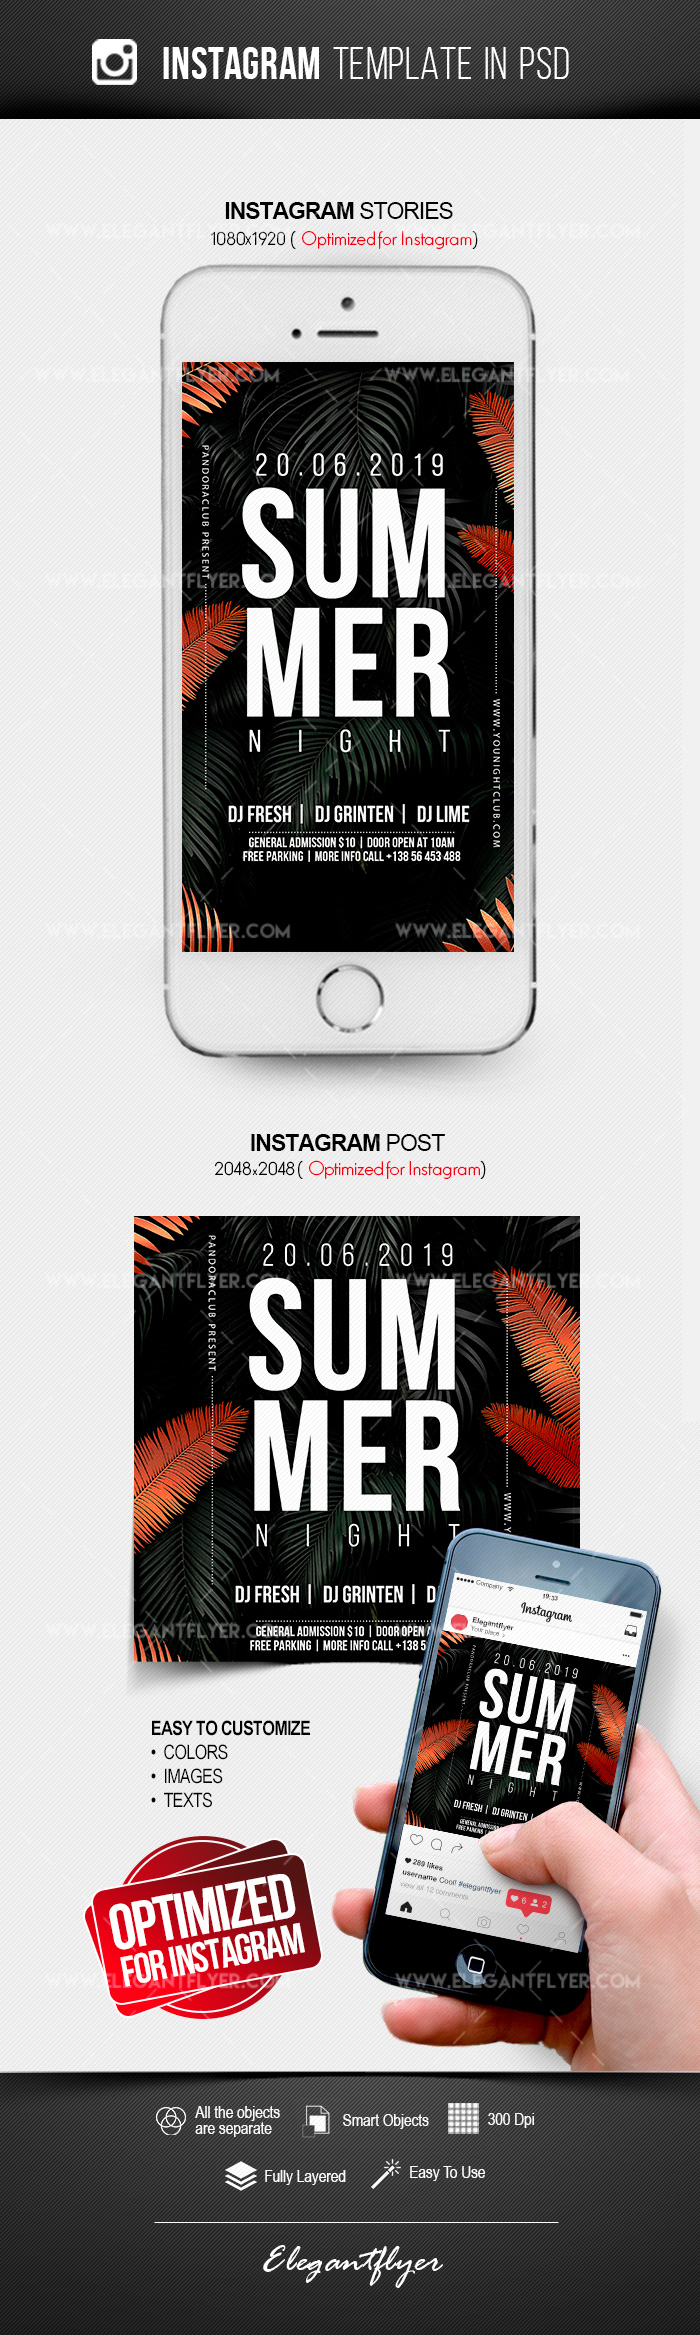 Summer Night – Instagram Stories Template in PSD + Post Templates